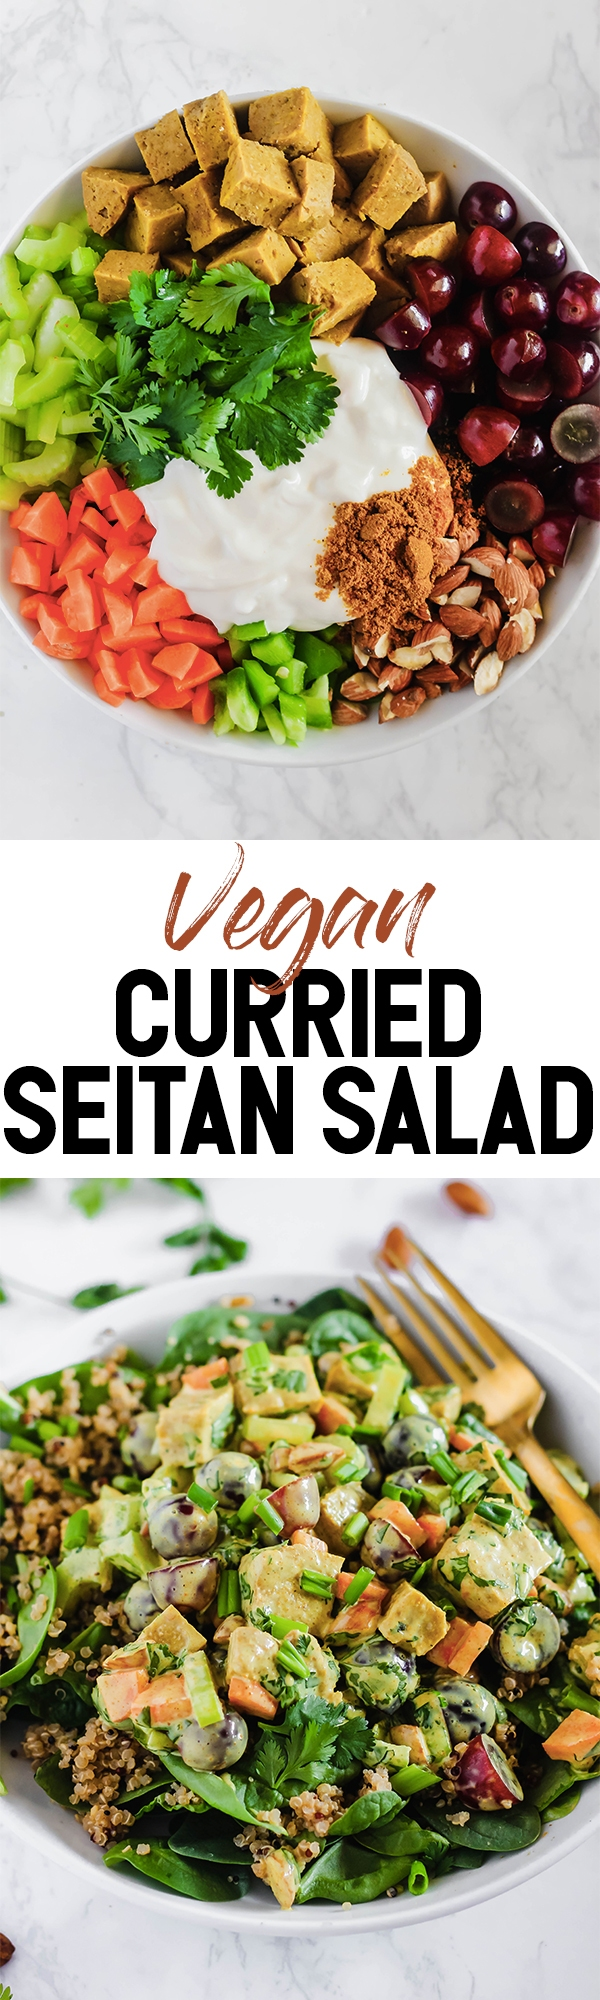 This creamy Curried Seitan Salad requires no cooking and is a refreshing meal to help you cool off this summer! It's full of crunchy vegetables, protein-packed seitan and sweet grapes. (vegan)